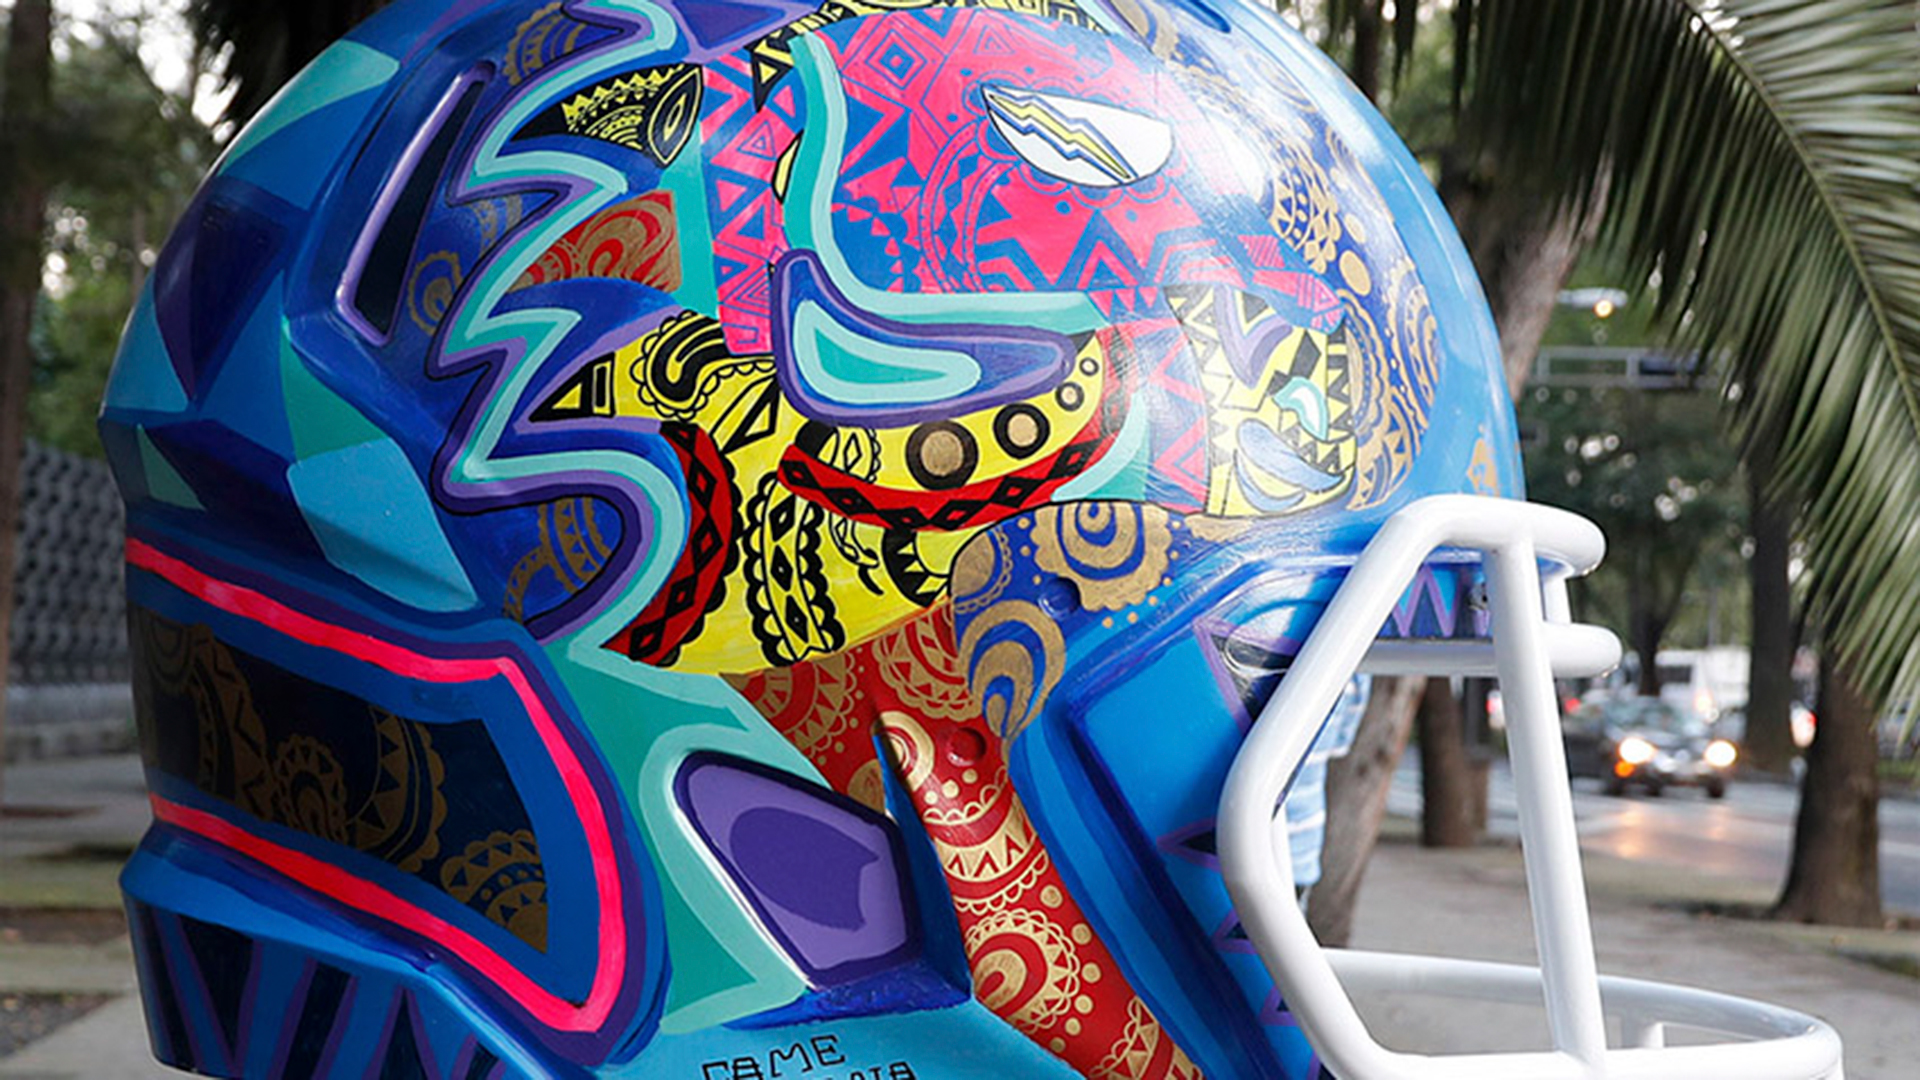 Helmets painted by various Mexican artists on display as a public art exhibit at Paseo de la Reforma in Mexico City. The Houston Texans and the Oakland Raiders will face-off in Mexico City on Monday, Nov. 21st. (Ben Liebenberg/NFL)